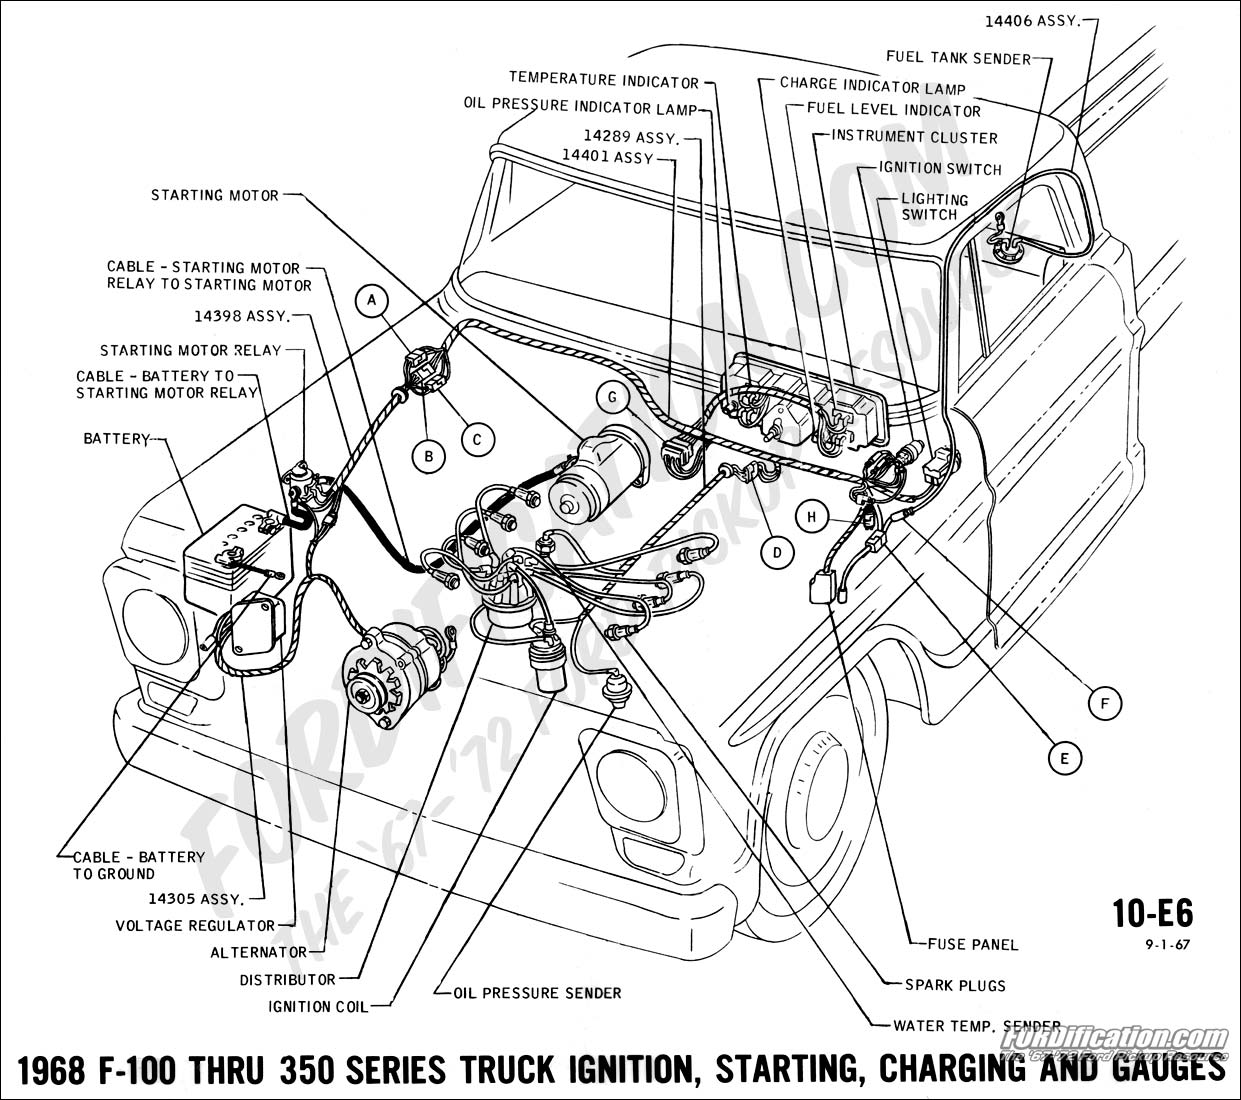 Ford Truck Technical Drawings And Schematics Section H Wiring 1967 Galaxie 390 Diagram 1968 F 100 Thru 350 Ignition Starting Charging Gauges